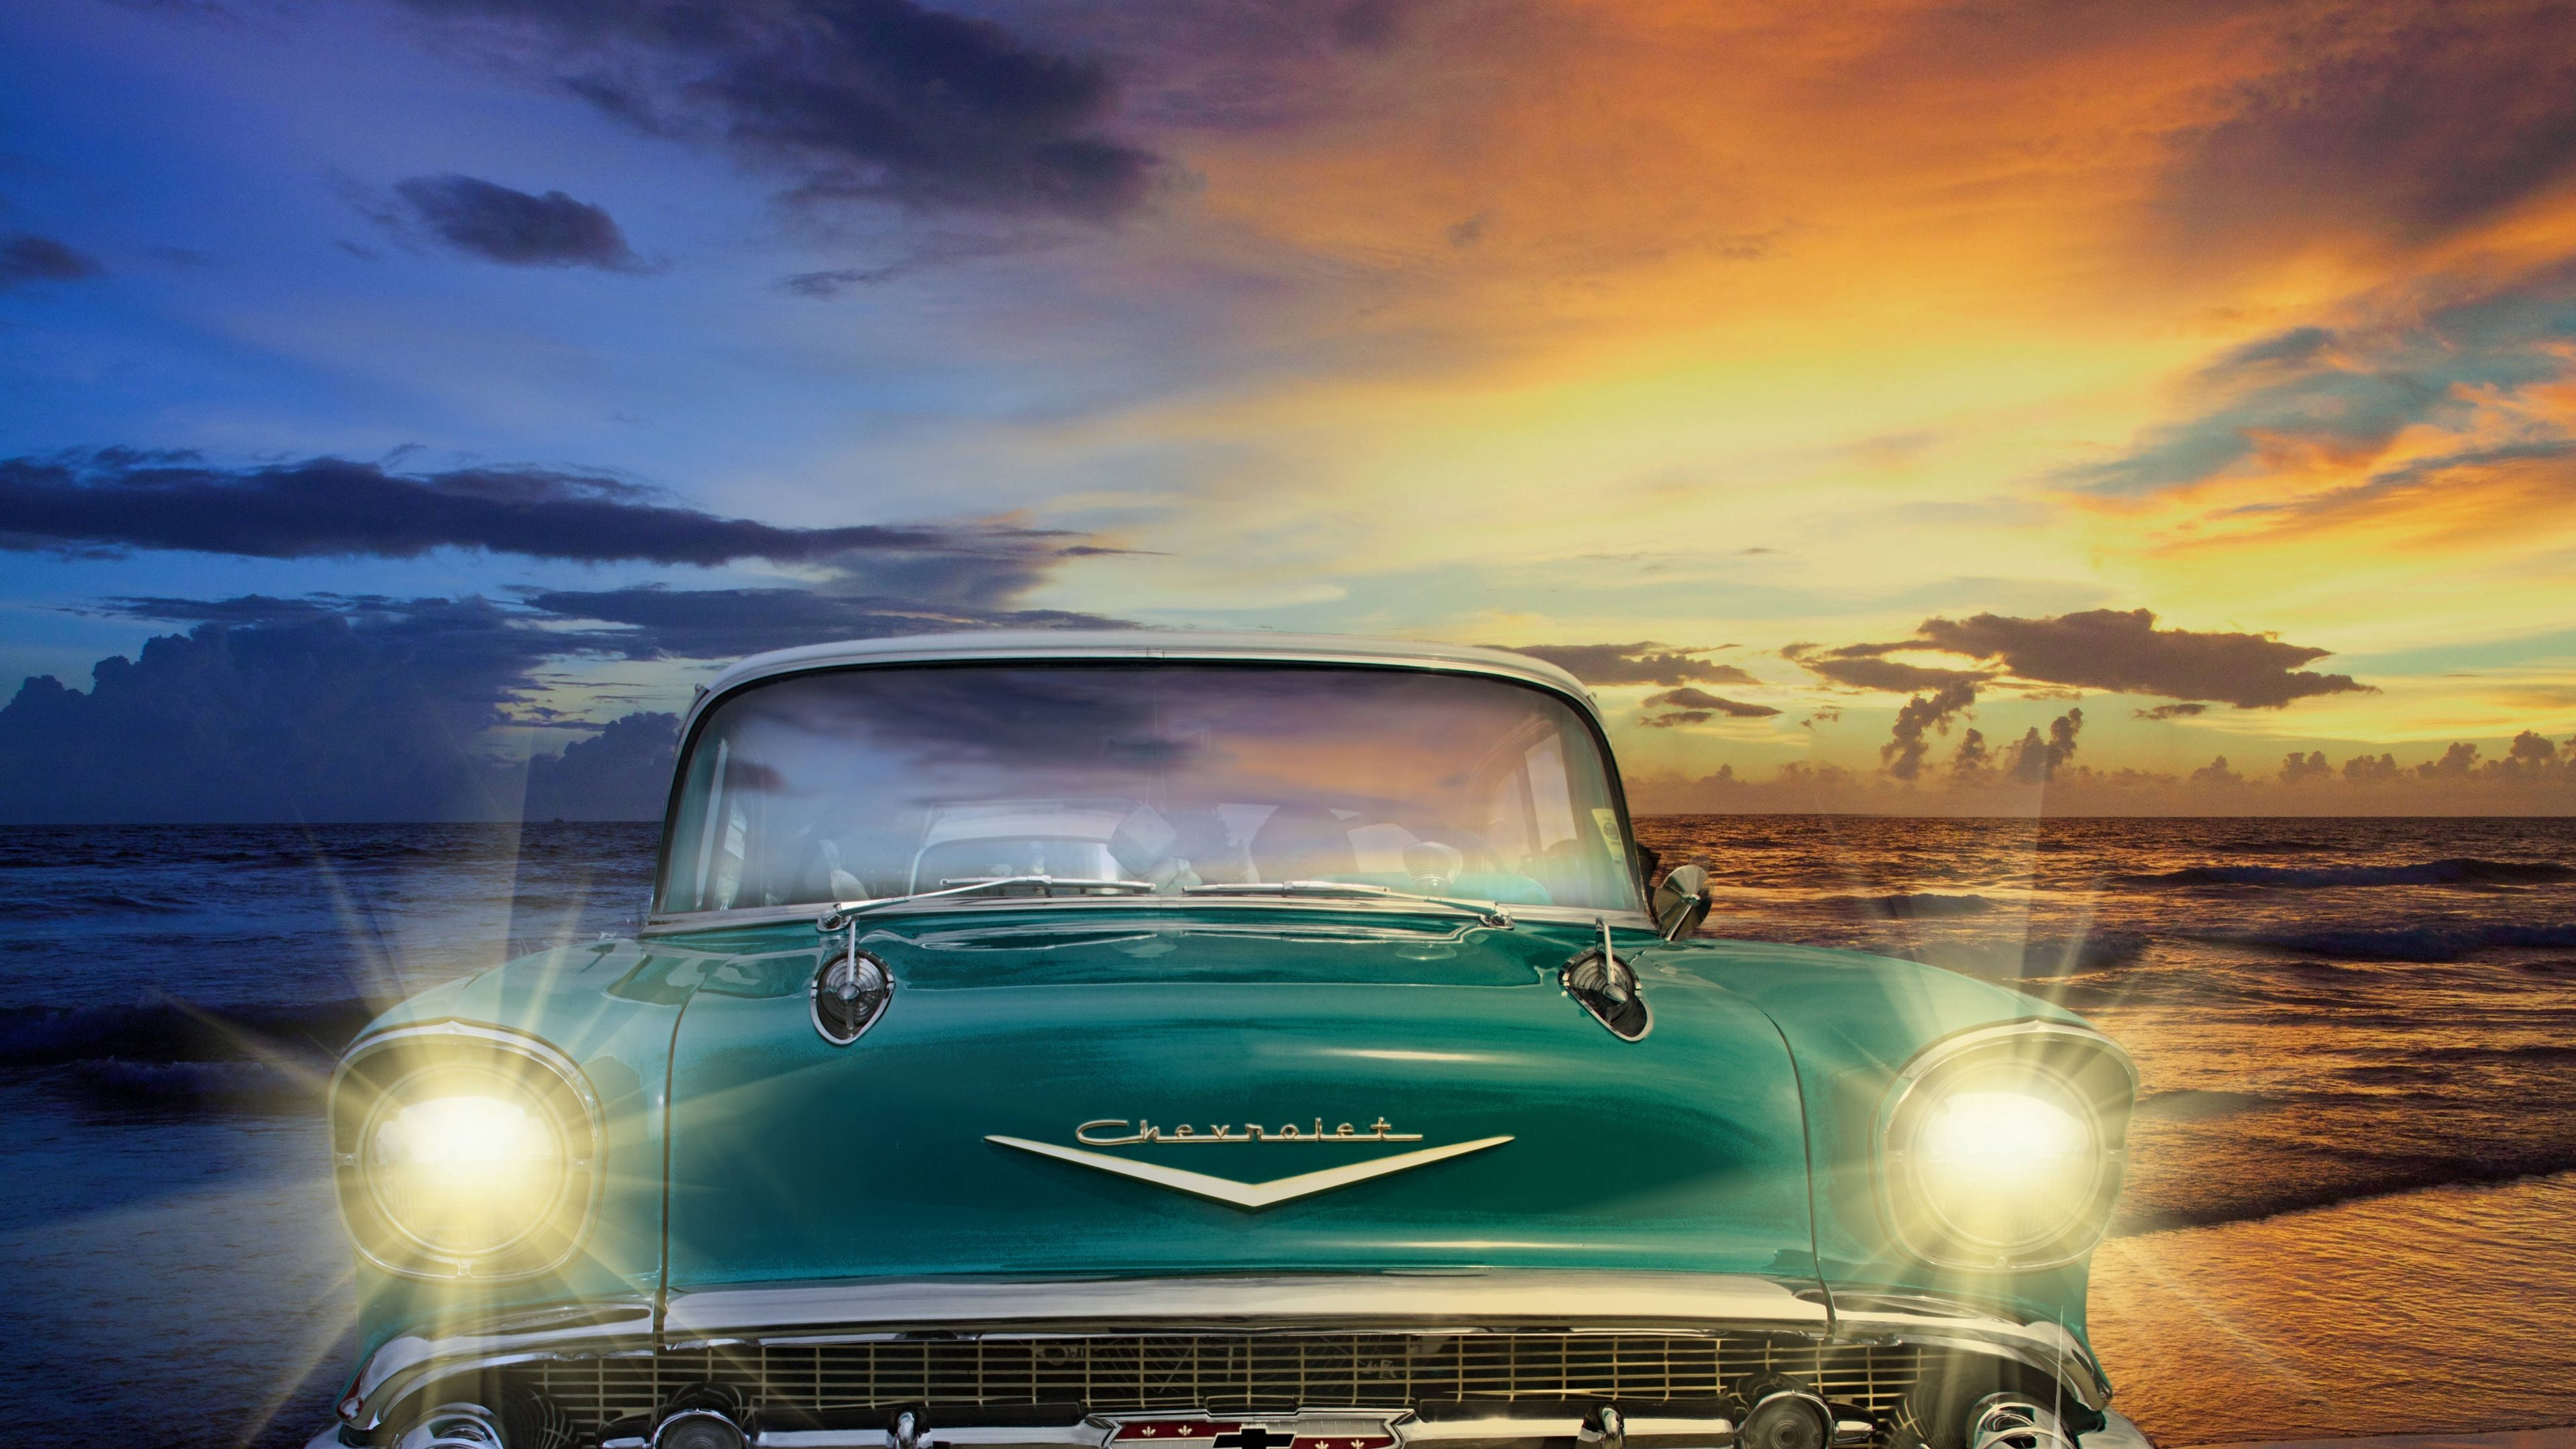 Chevrolet Old Retro Classic Vintage Car Vintage Wallpapers Vintage Cars Wallpapers Old Wallpapers Hd Wallpaper Chevrolet Wallpaper Car Wallpapers Retro Cars